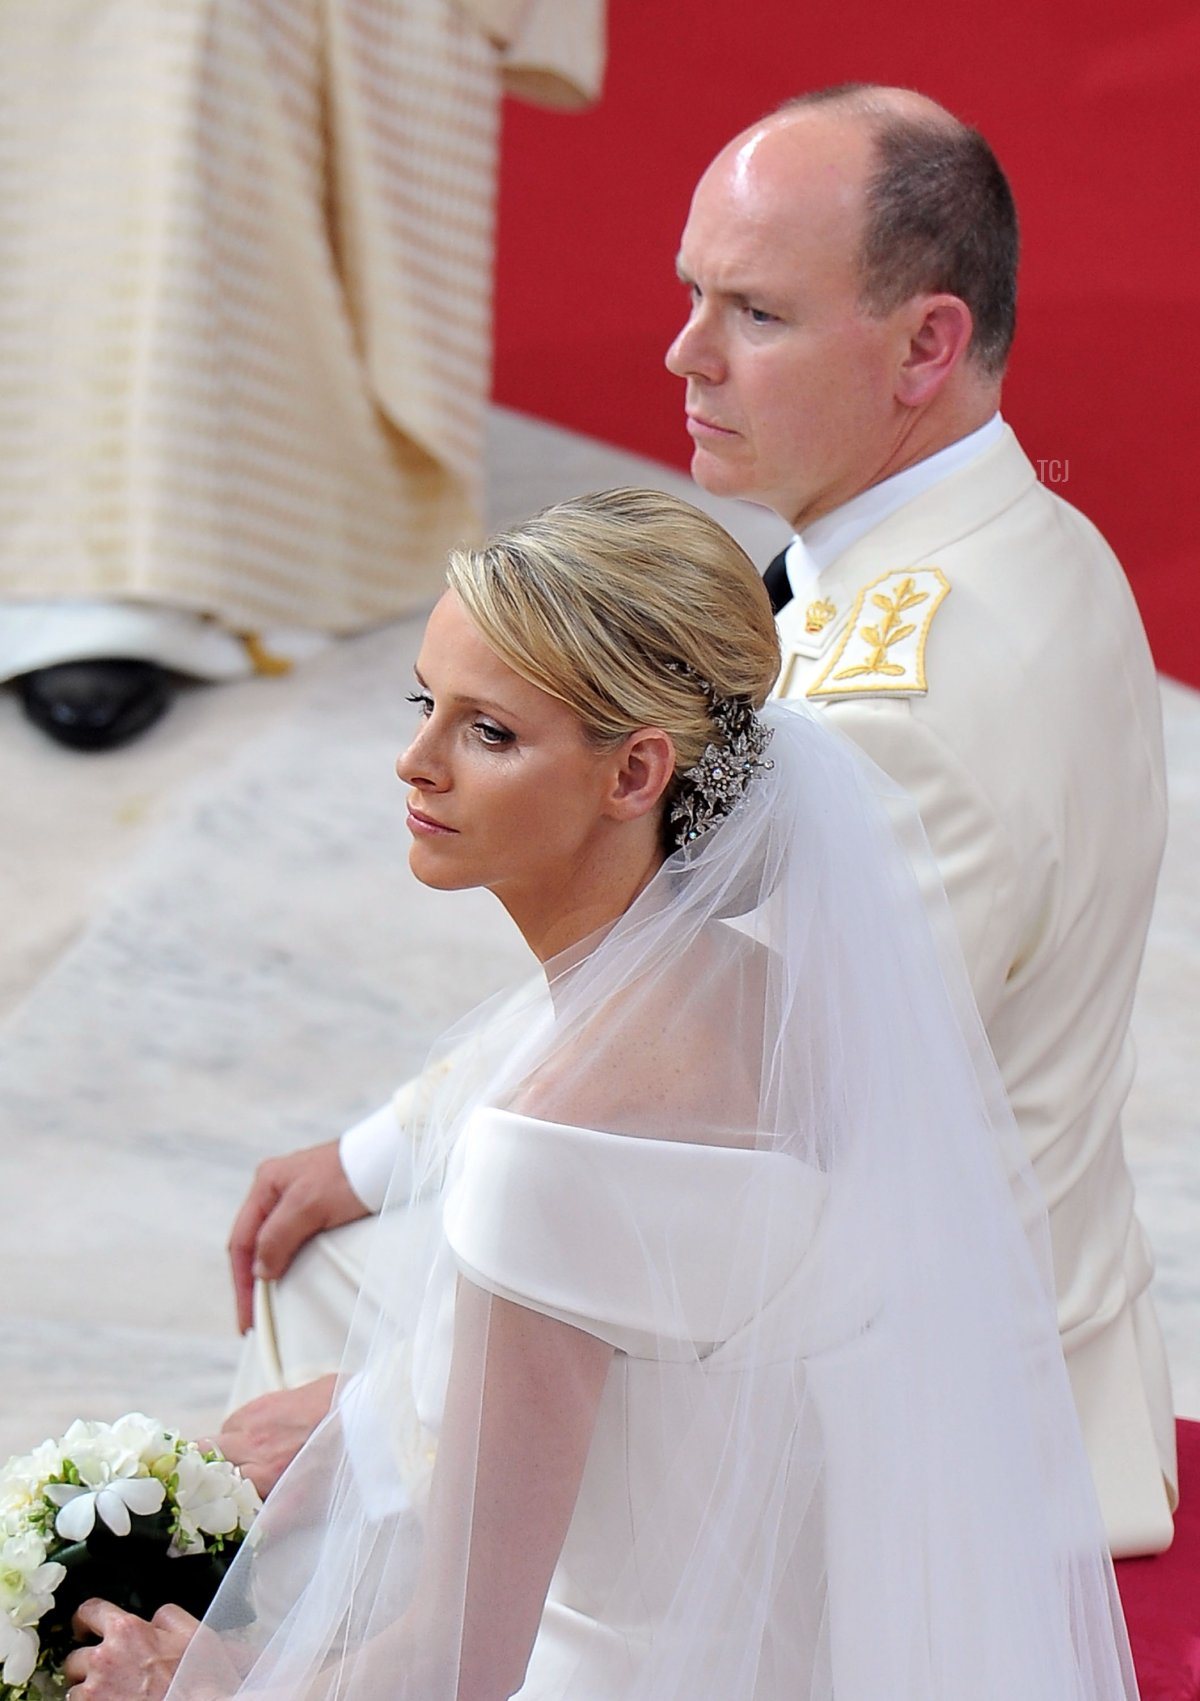 Princess Charlene of Monaco and Prince Albert Of Monaco arrive for the religious ceremony of the Royal Wedding of Prince Albert II of Monaco to Charlene Wittstock in the main courtyard at Prince's Palace on July 2, 2011 in Monaco